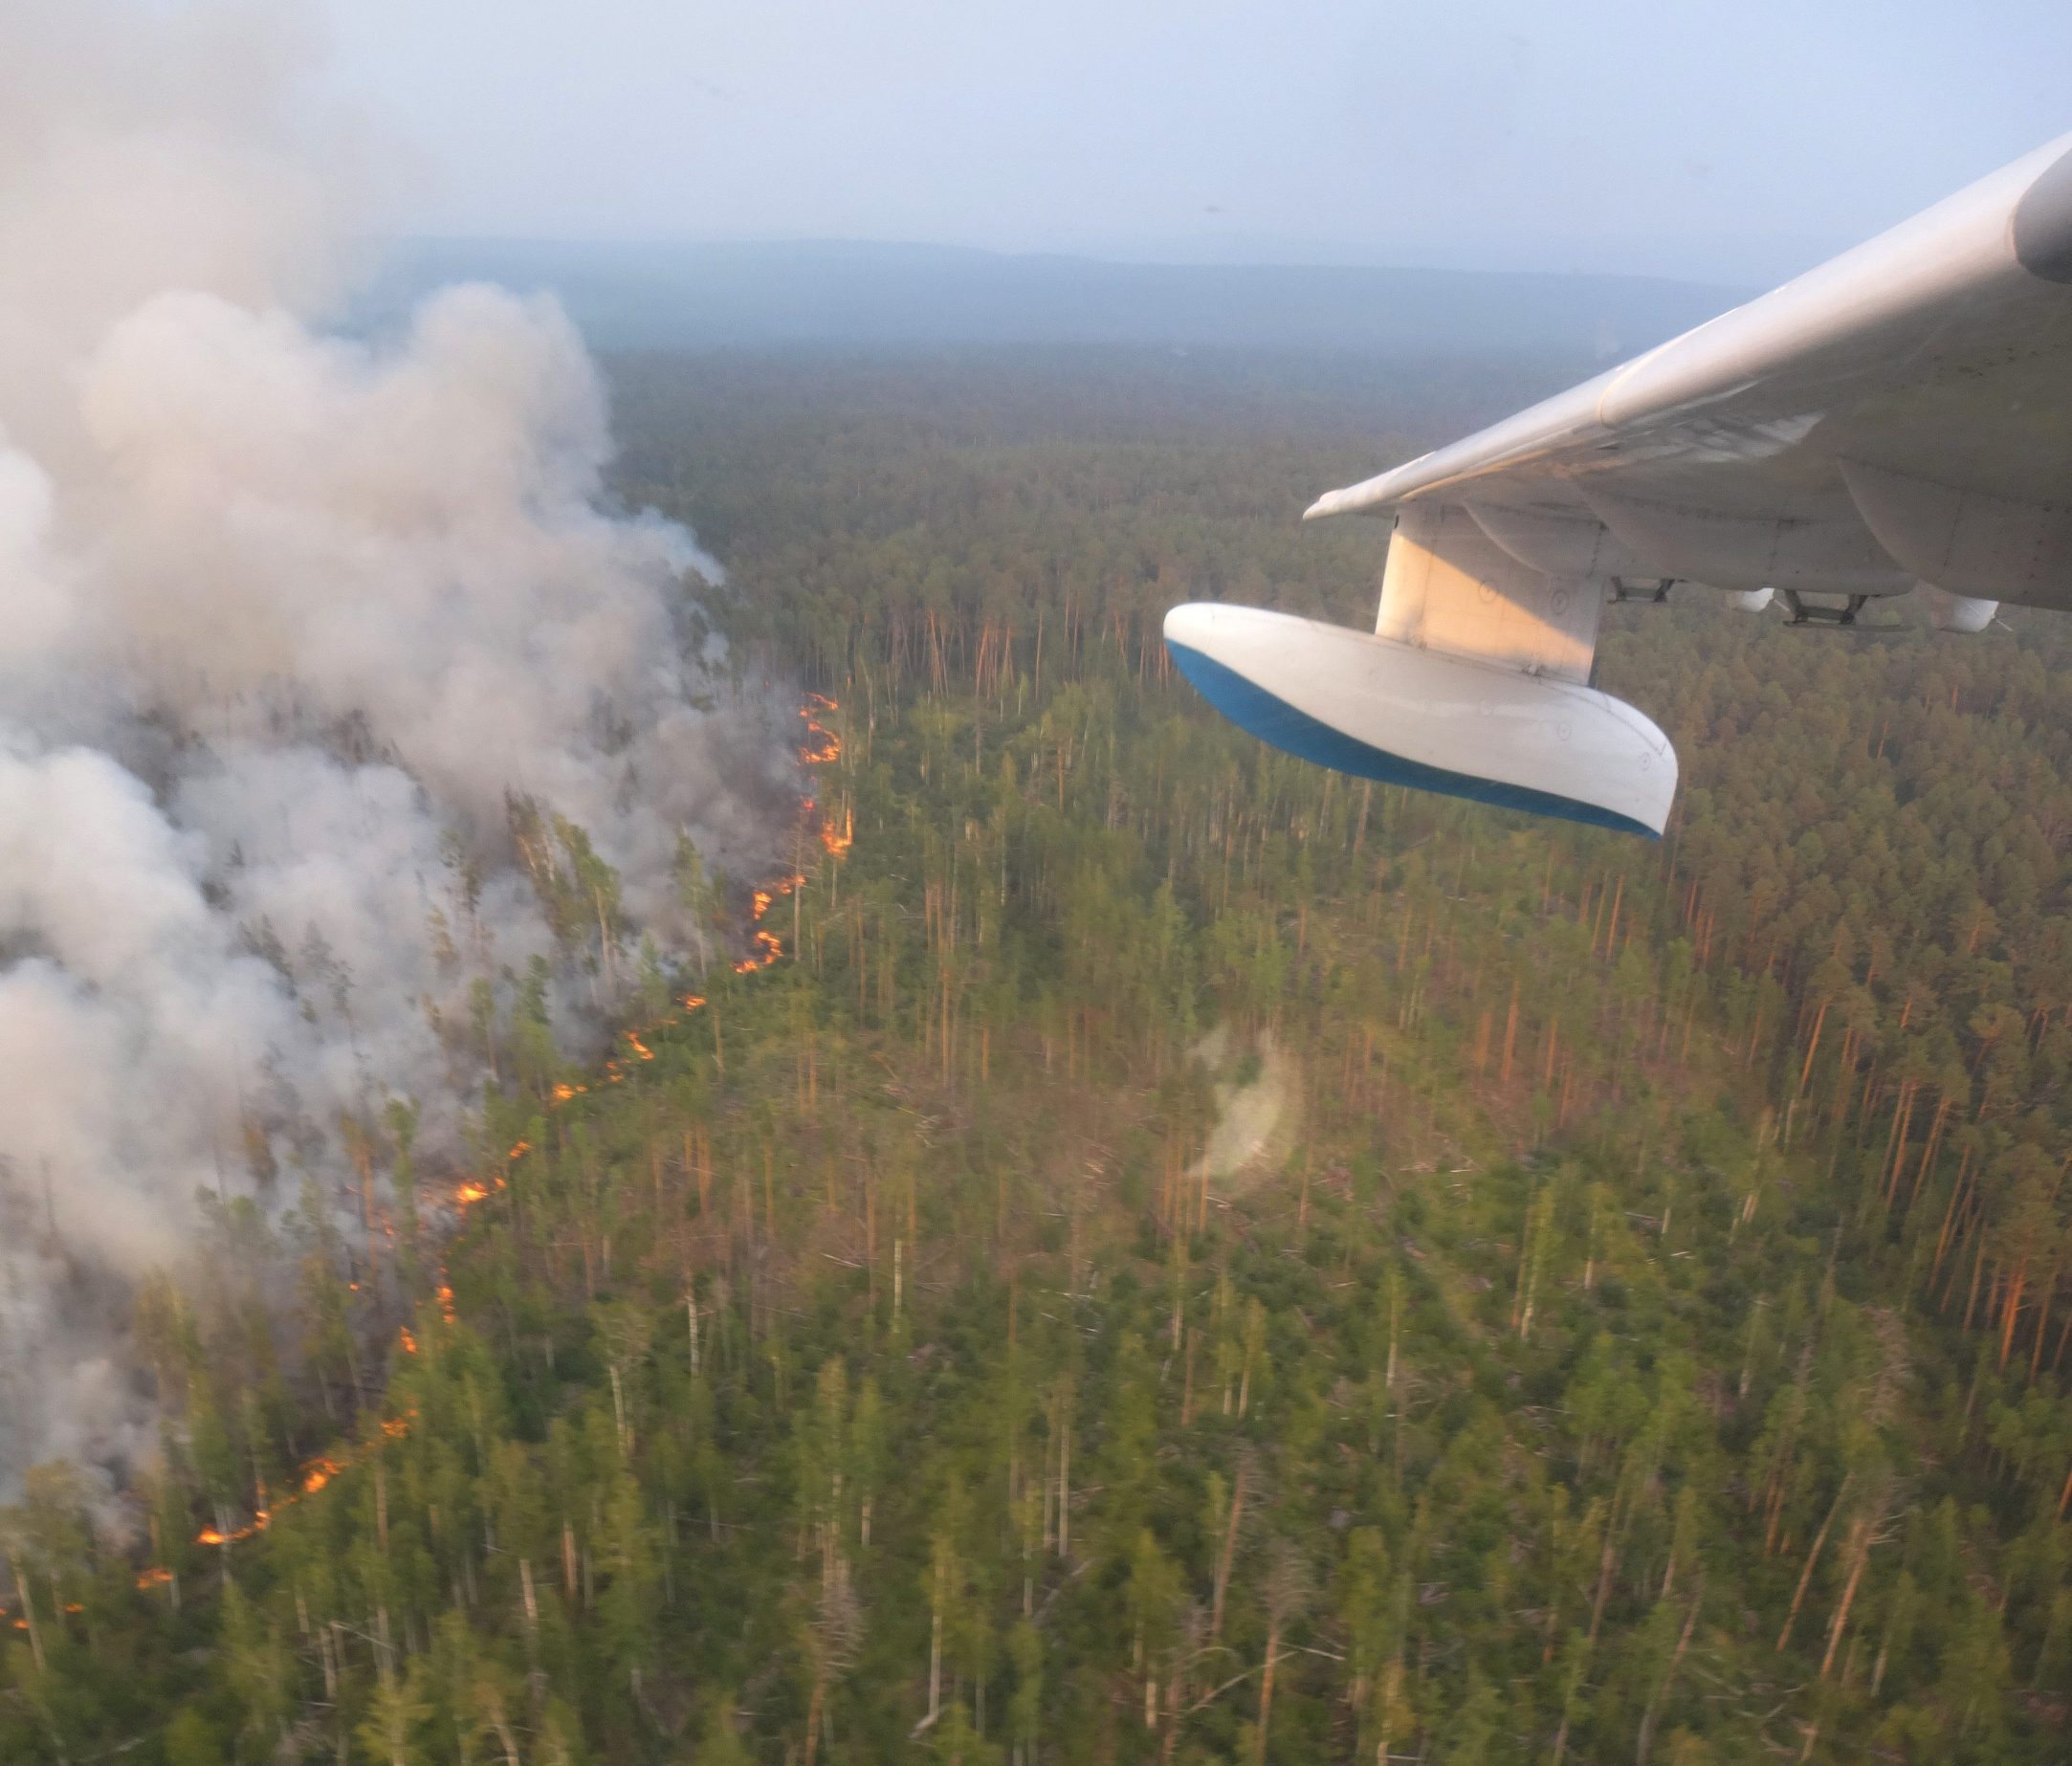 An aerial view through an aircraft window shows flame and smoke rising froma wildfire in Krasnoyarsk region, Russiain this handout picture obtained by Reuters on August 1, 2019. Russian Emergencies Ministry in Krasnoyarsk region/Handout via REUTERS ATTENTION EDITORS - THIS IMAGE WAS PROVIDED BY A THIRD PARTY. NO RESALES. NO ARCHIVES. MANDATORY CREDIT.